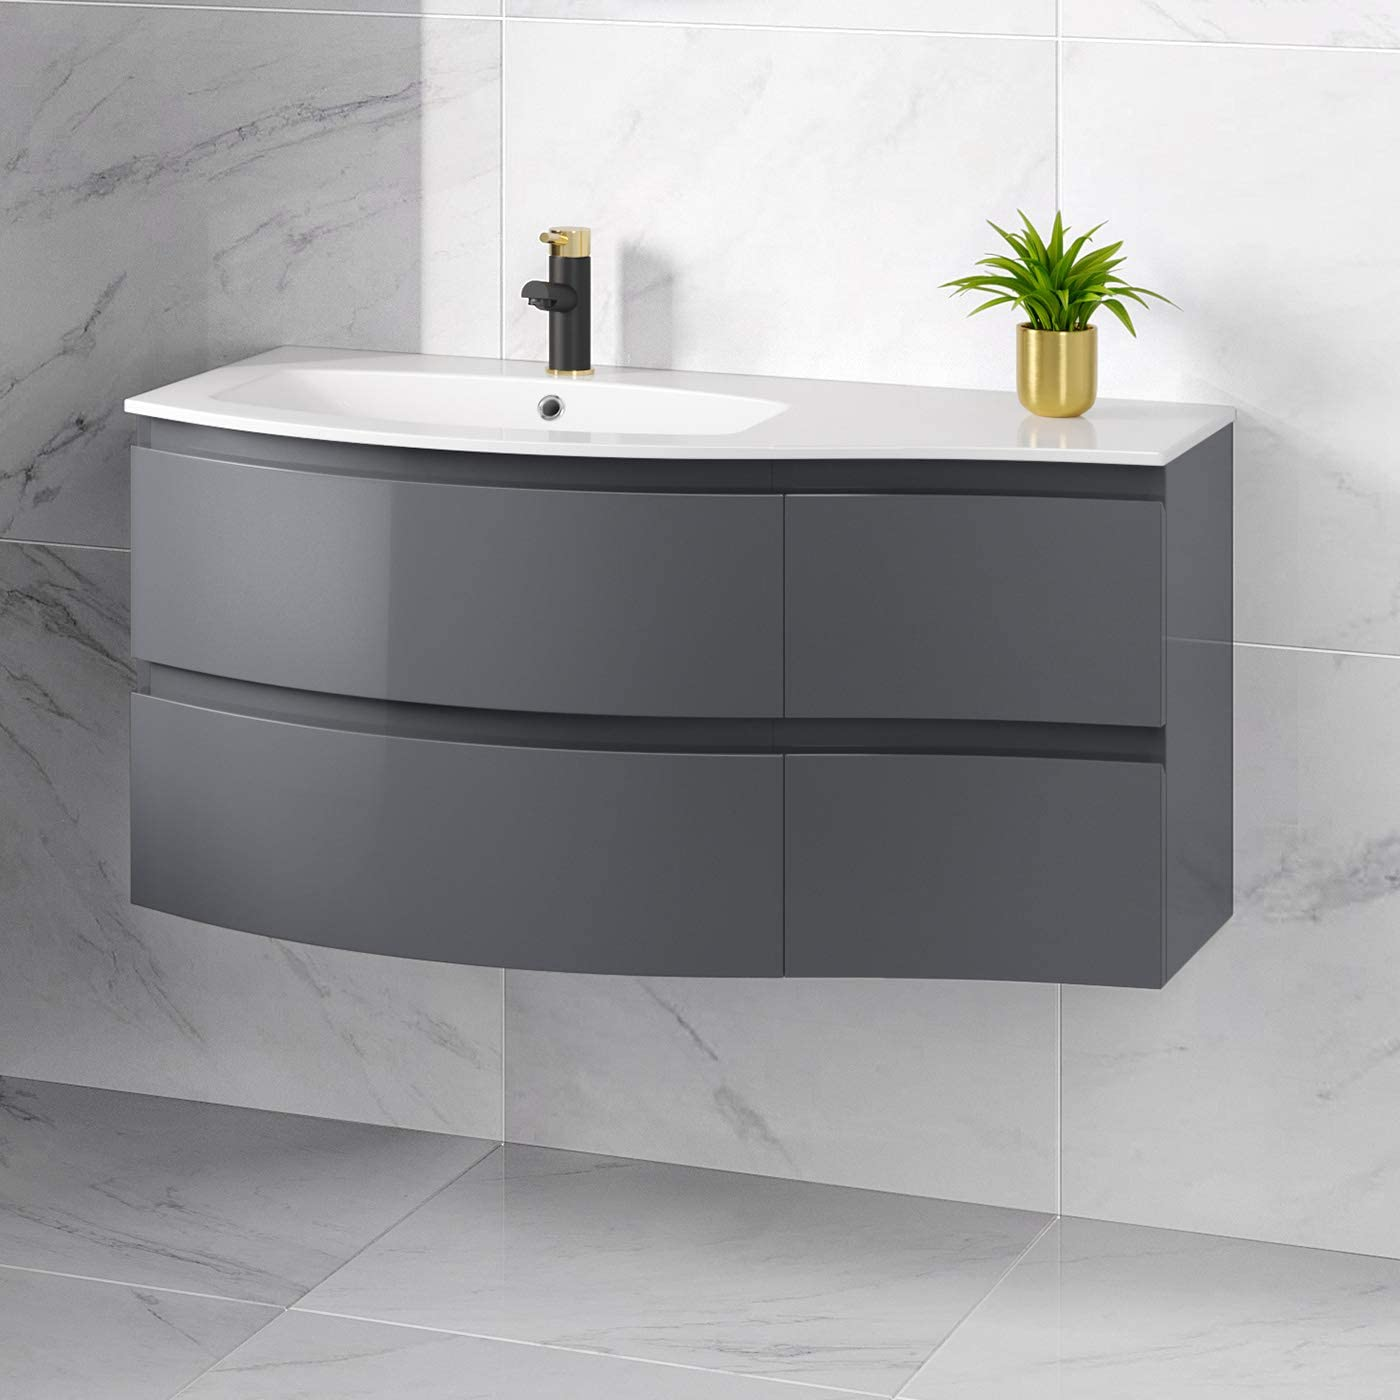 Modern Wall Hung Left Hand Curved Vanity Storage Unit 1040mm Gloss Grey Bathroom Amazon Co Uk Kitchen Home